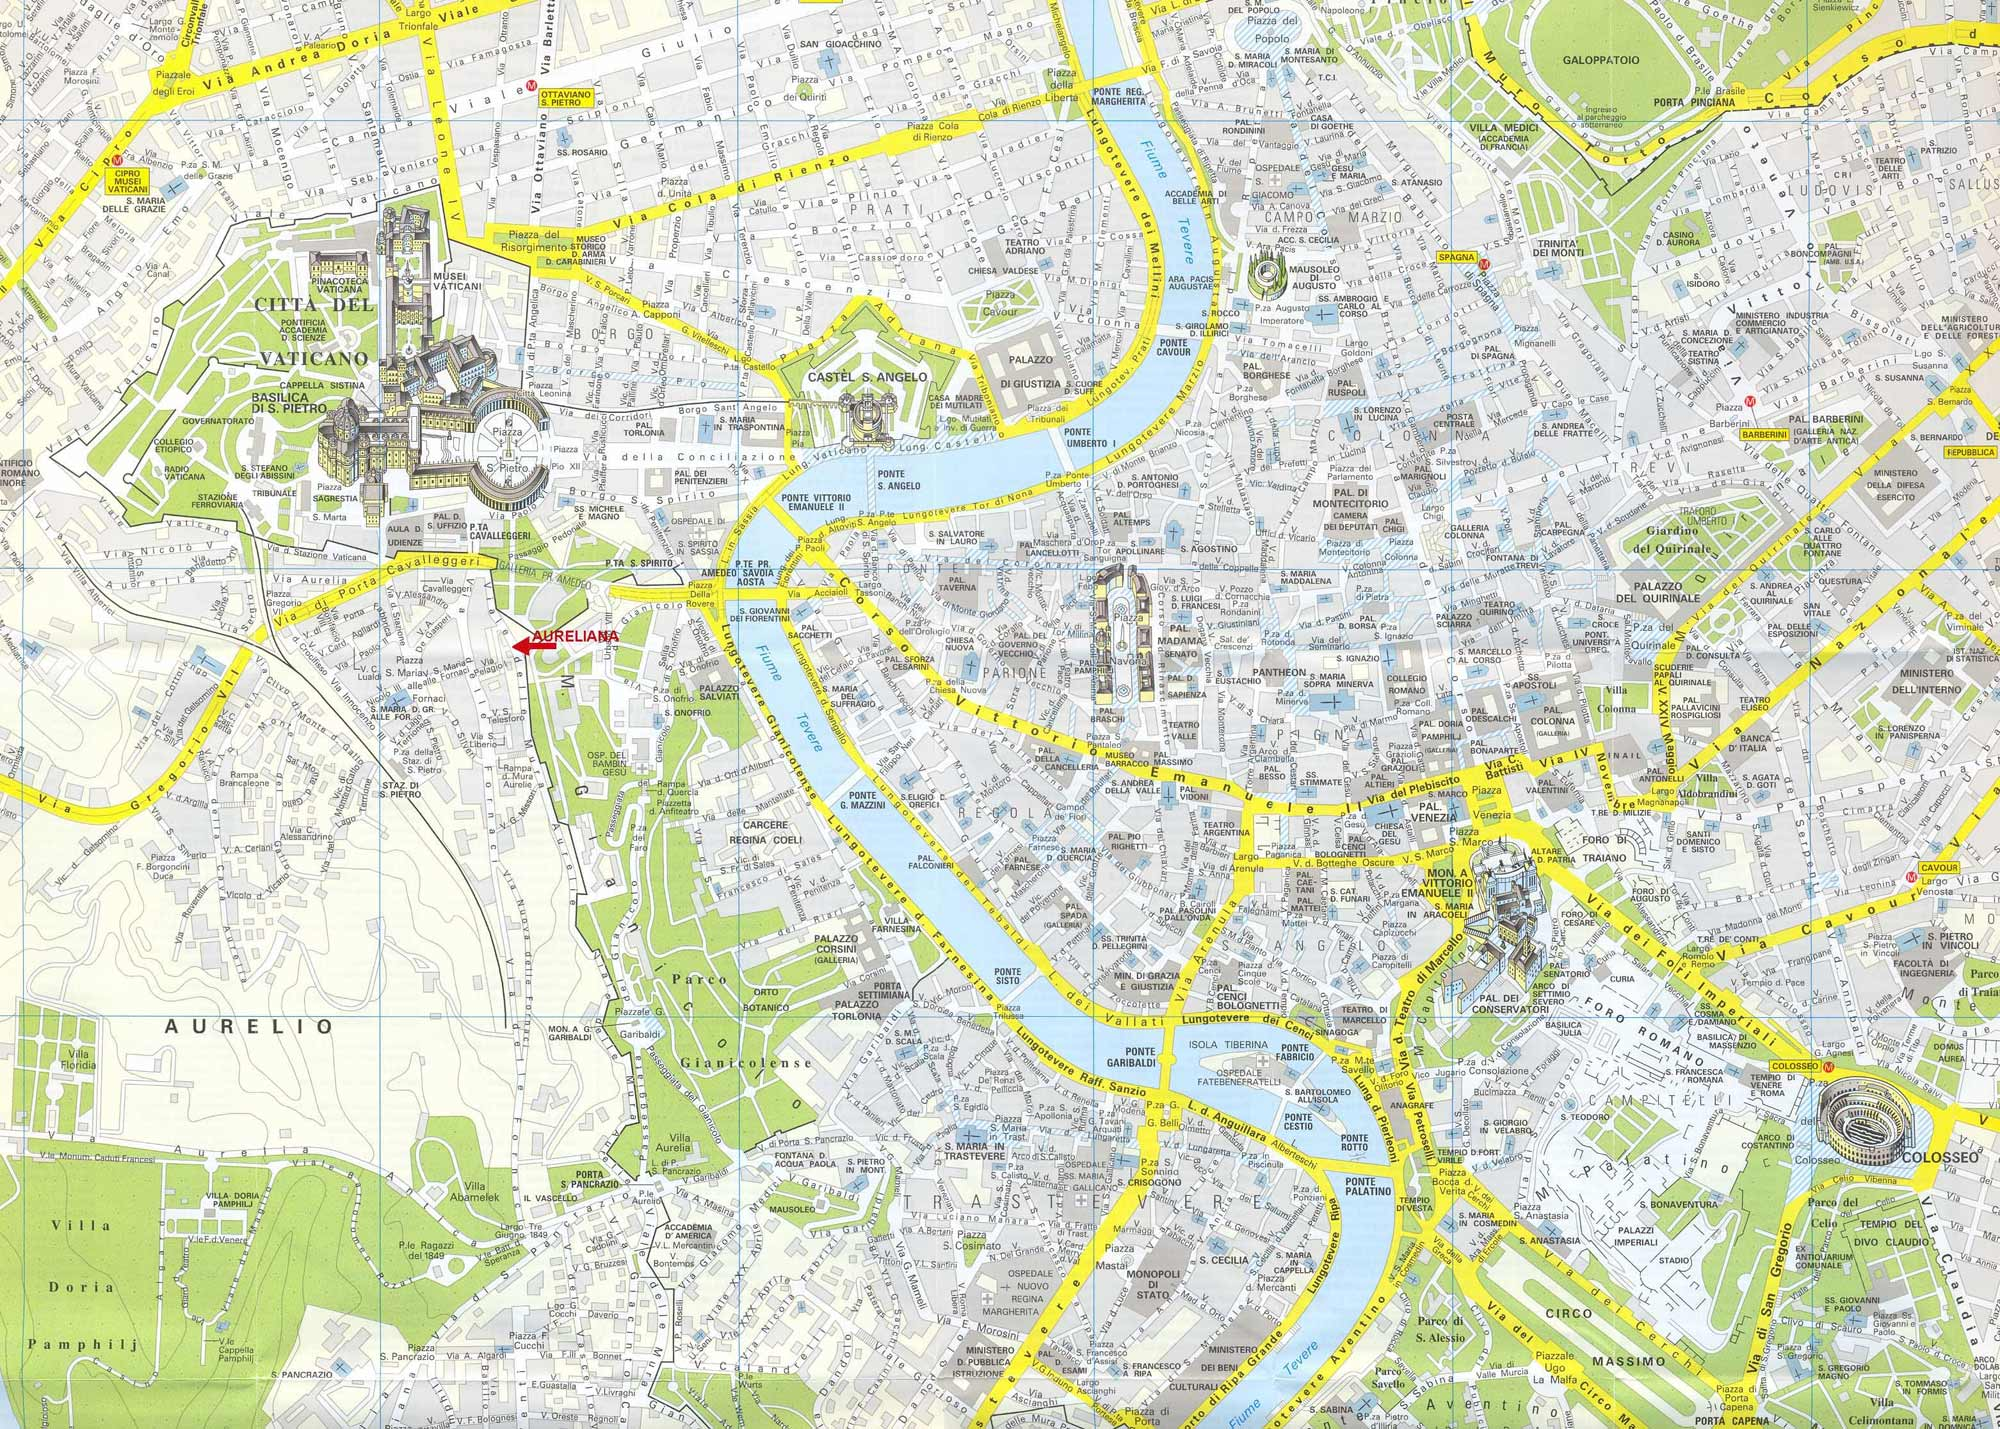 Rome City Map 3 • Mapsof.net